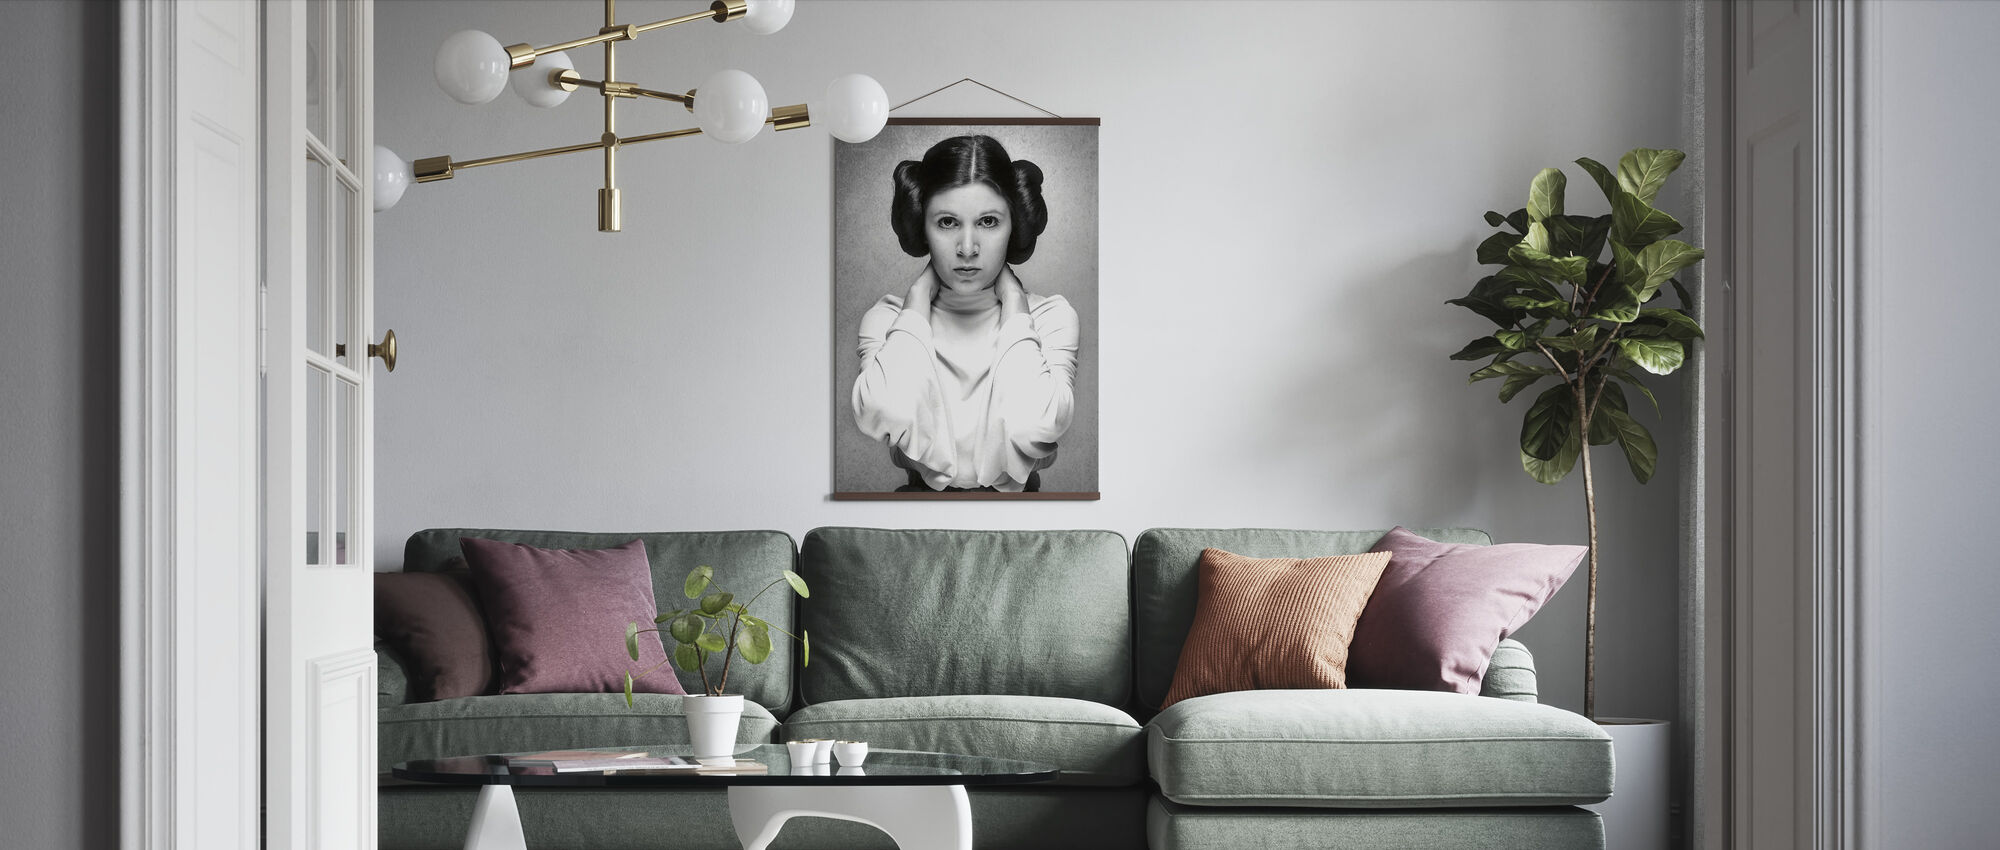 Prinzessin Leia - Carrie Fisher - Poster - Wohnzimmer